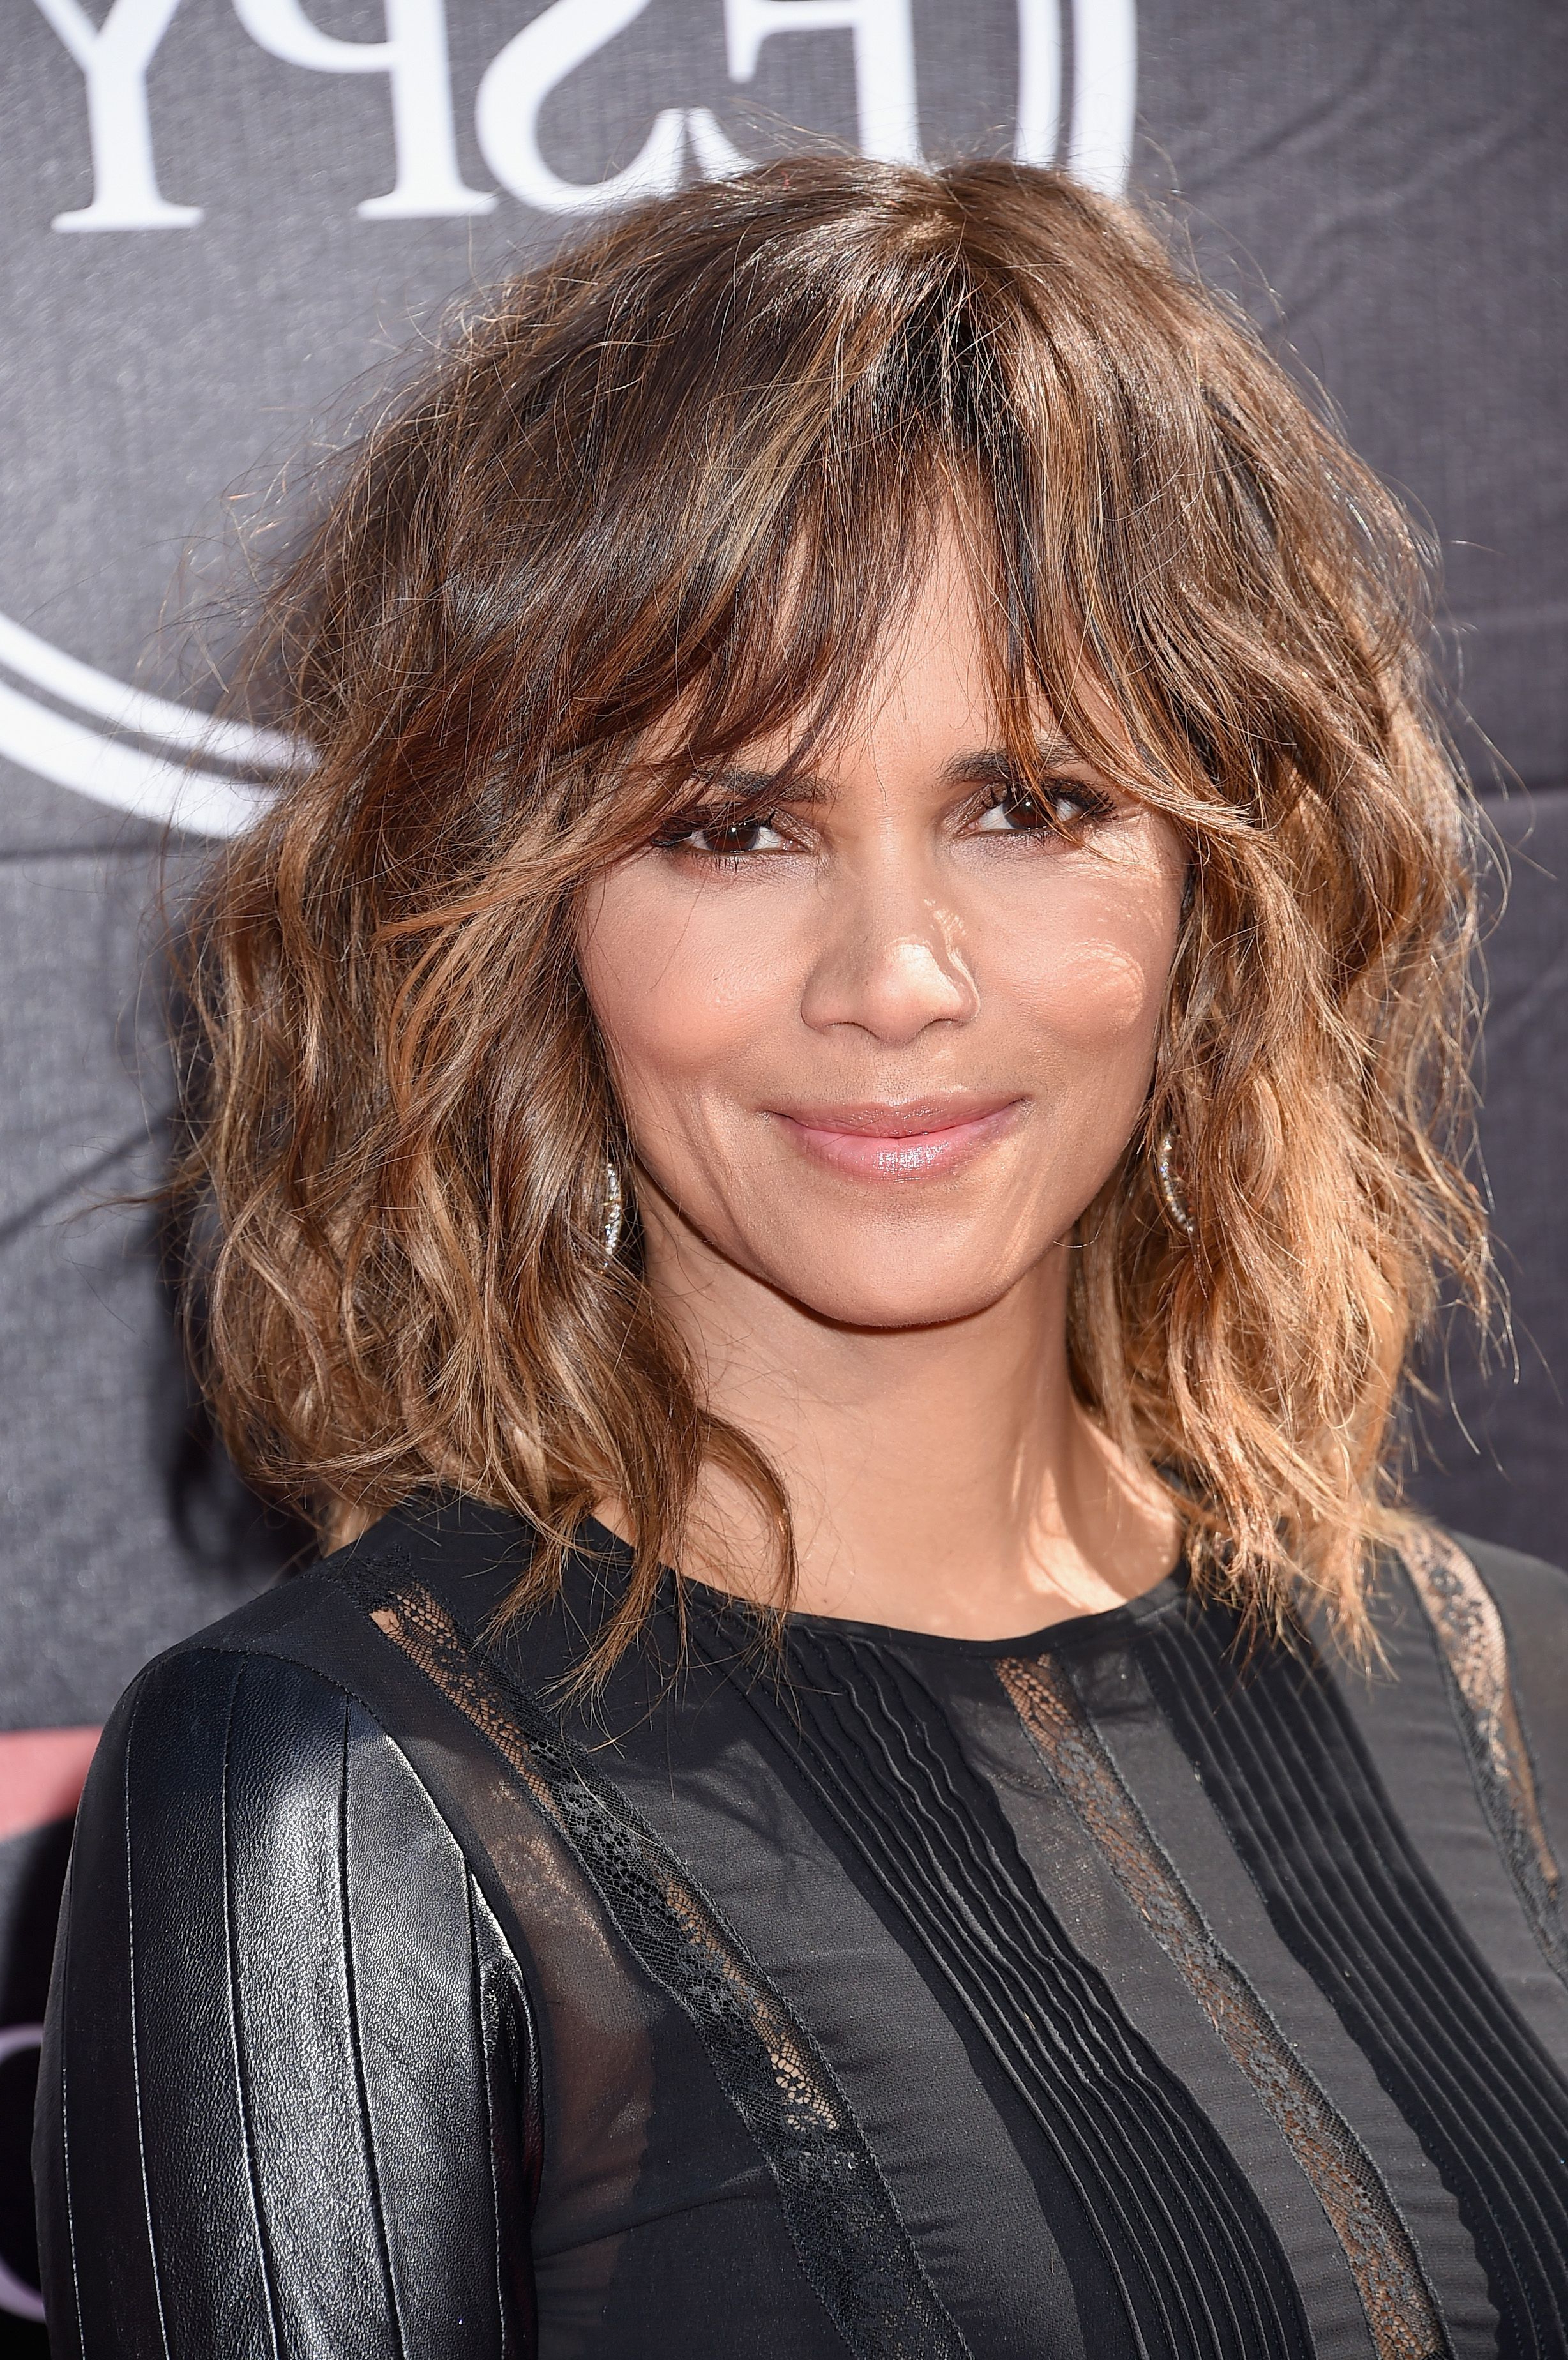 35 Best Hairstyles With Bangs – Photos Of Celebrity Haircuts With Bangs For Most Popular Messy Loose Curls Long Hairstyles With Voluminous Bangs (View 13 of 20)